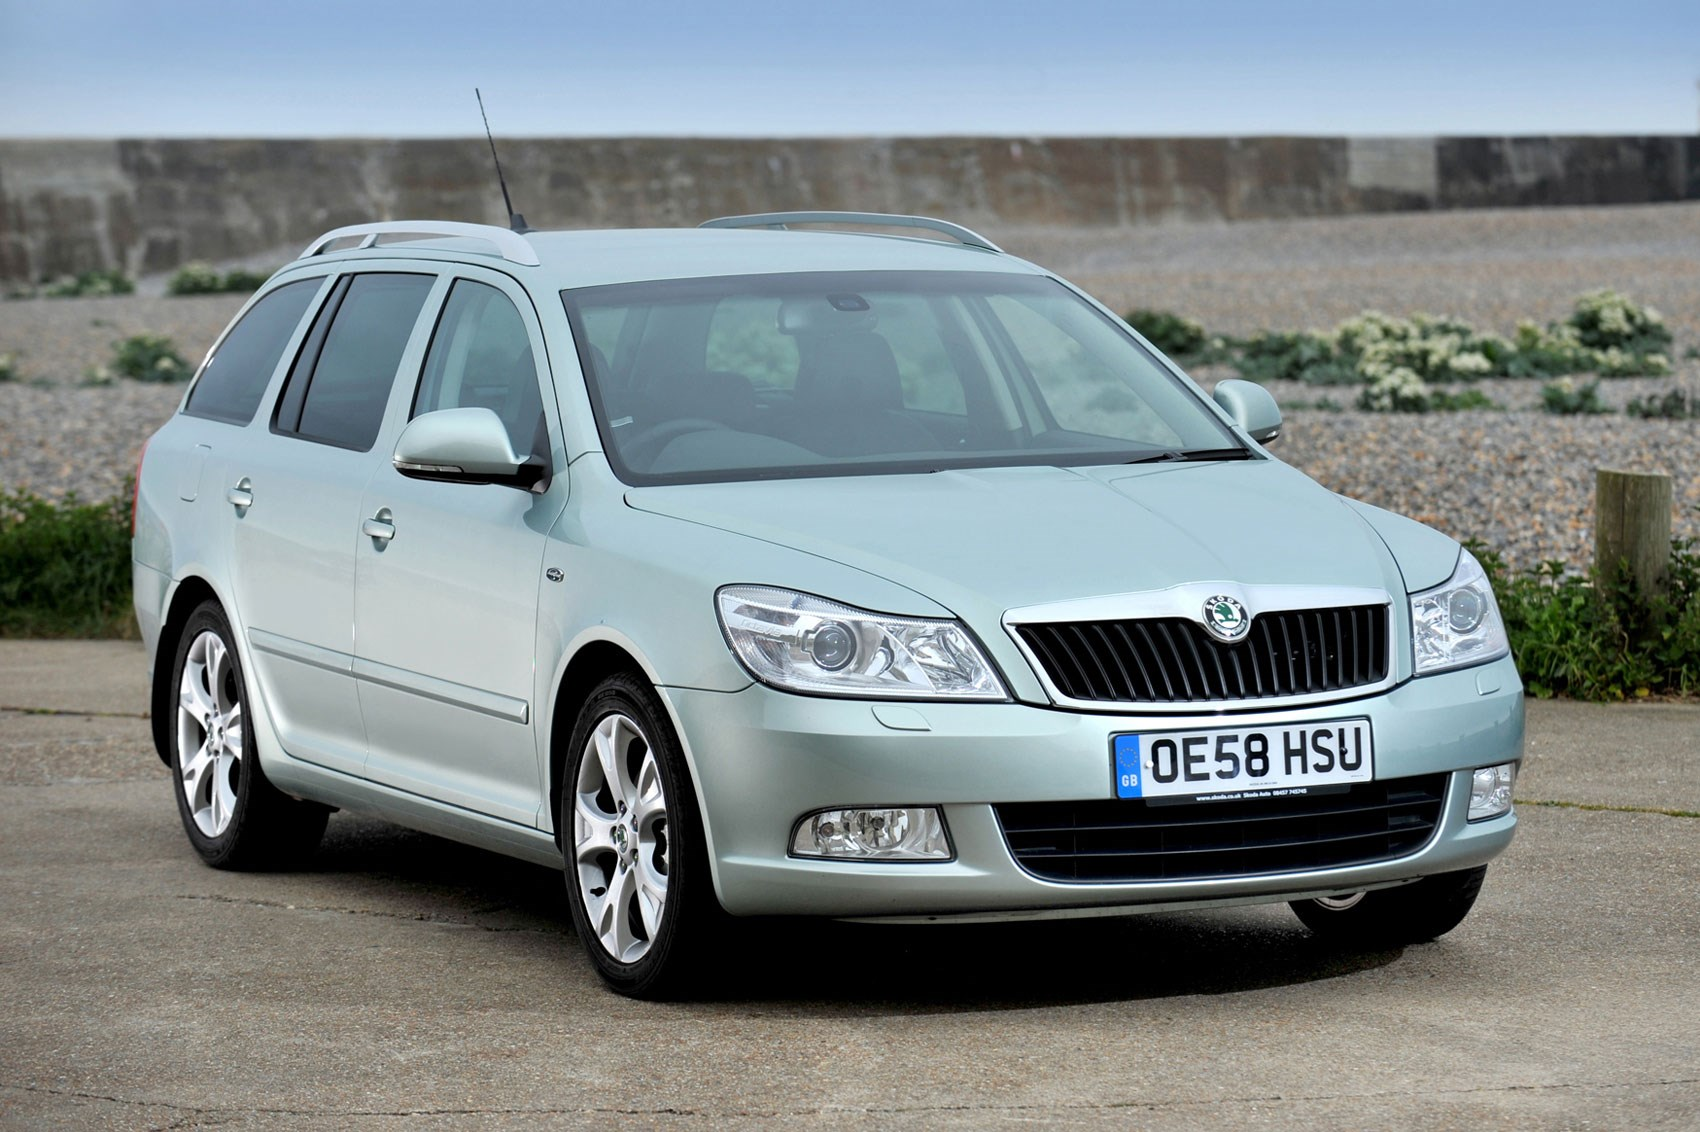 Best used commuter cars for £2,000 | Parkers